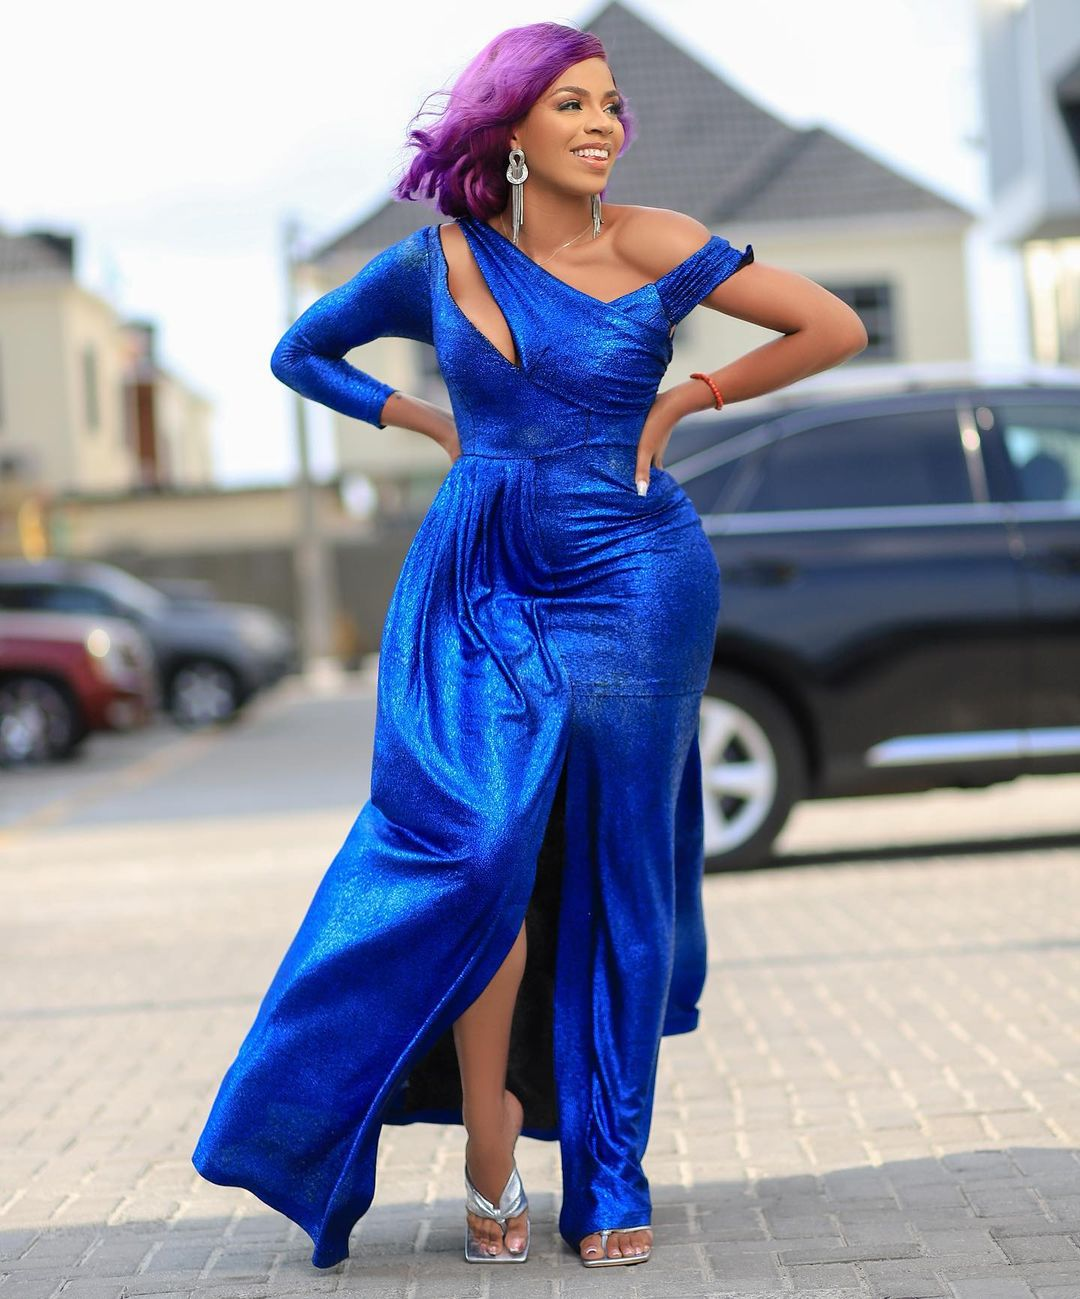 Venita Apofure Blue Gown Is Sure Pulling The Attention